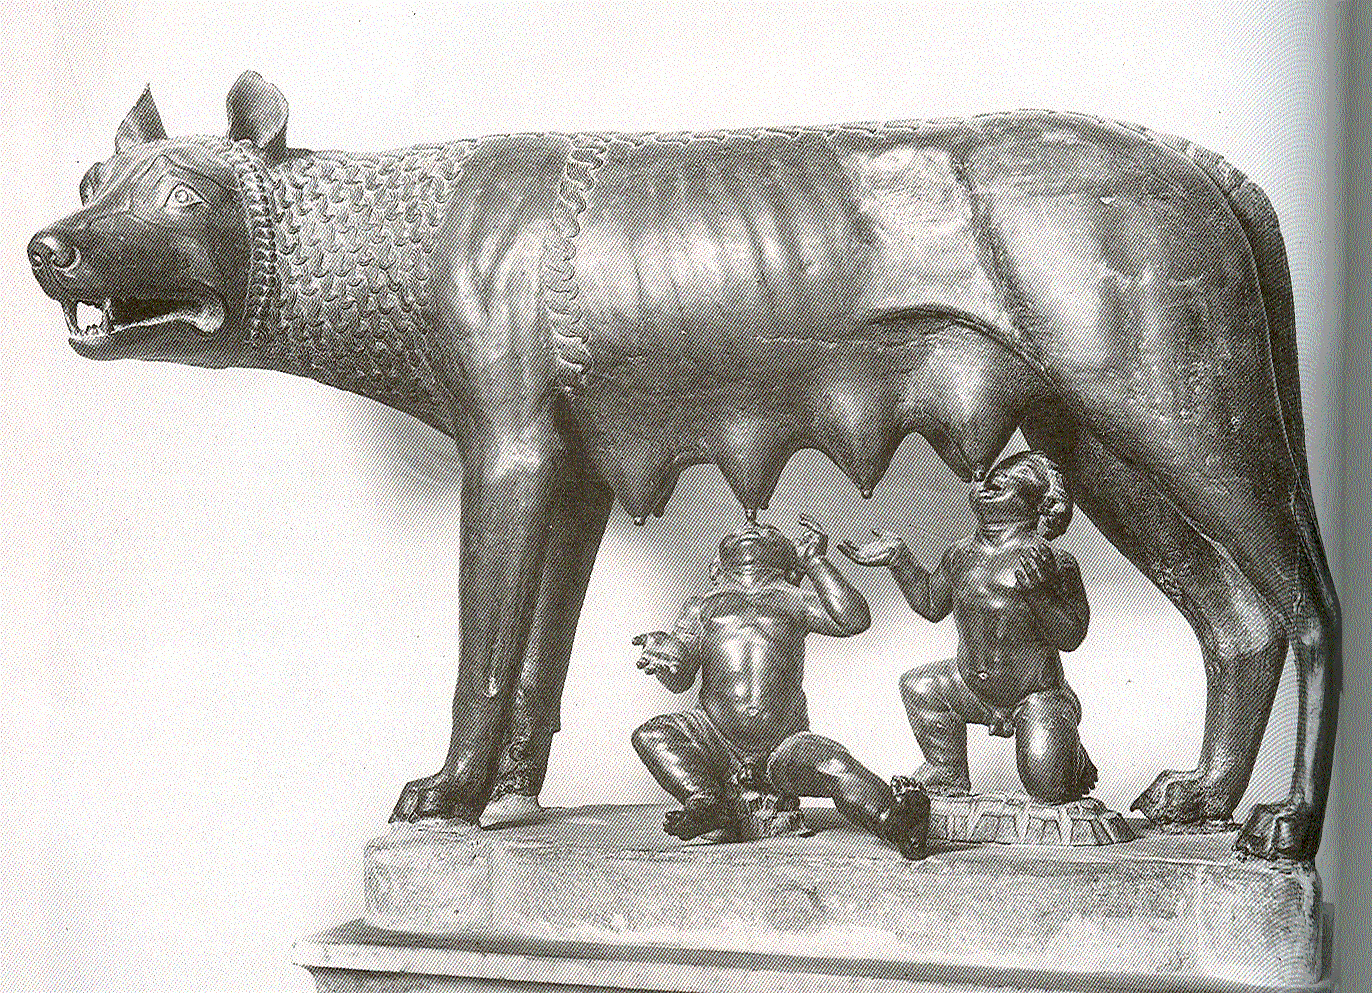 an essay on romulus and remus According to roman mythology, the city's twin founders romulus and remus  were abandoned on the banks of the tiber river when  essay by dr jaclyn  neel.